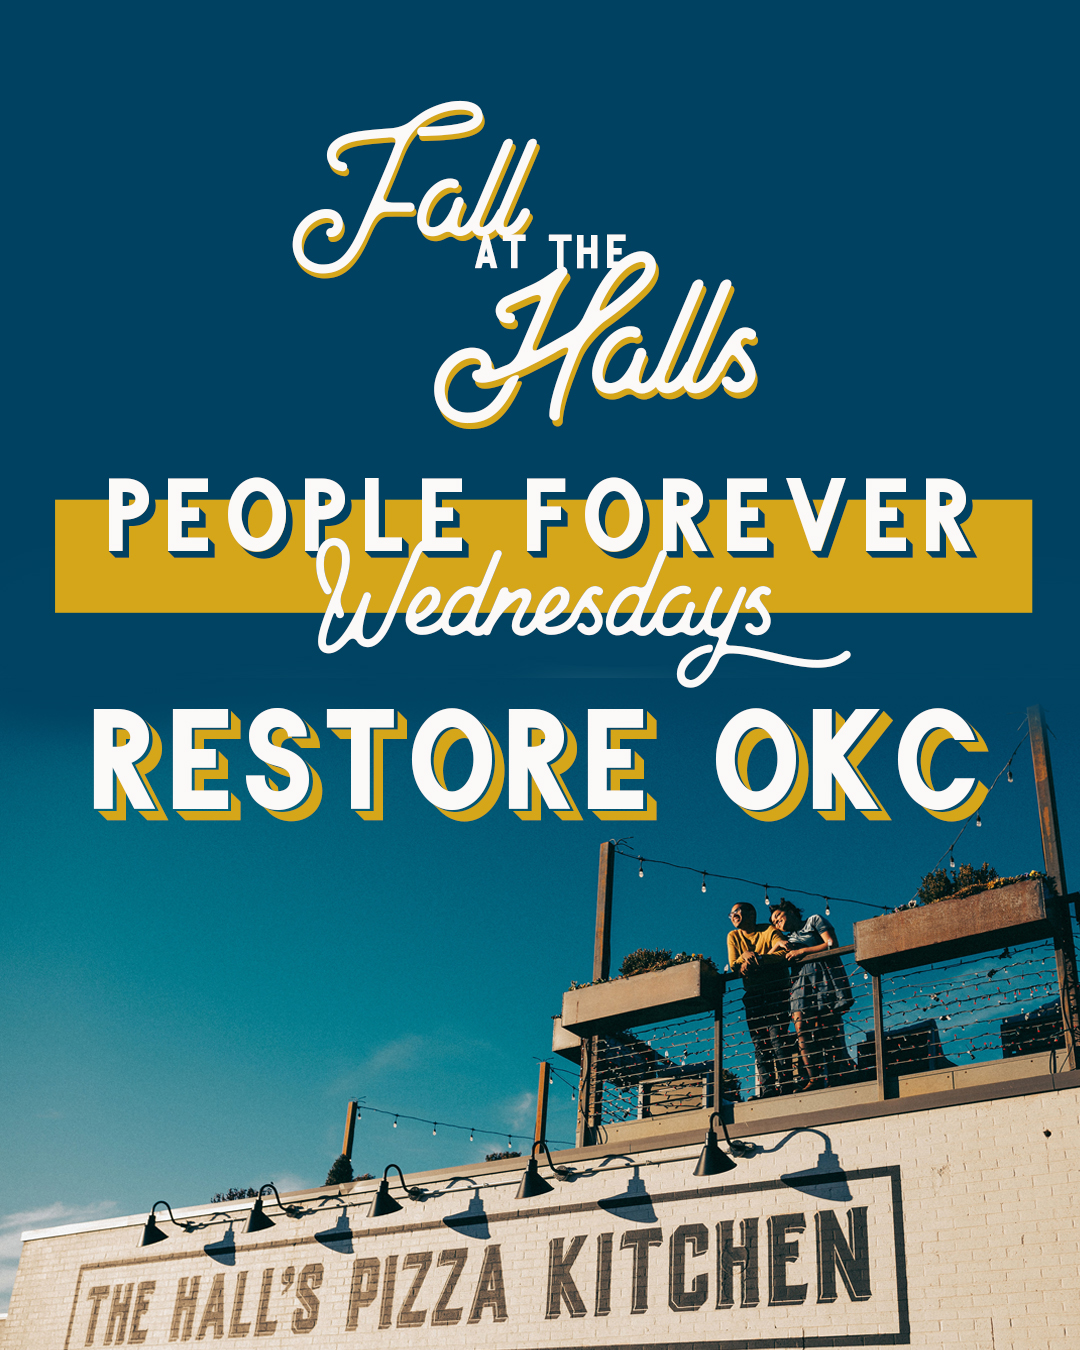 PEOPLE FOREVER - post - RESTORE OKC.jpg